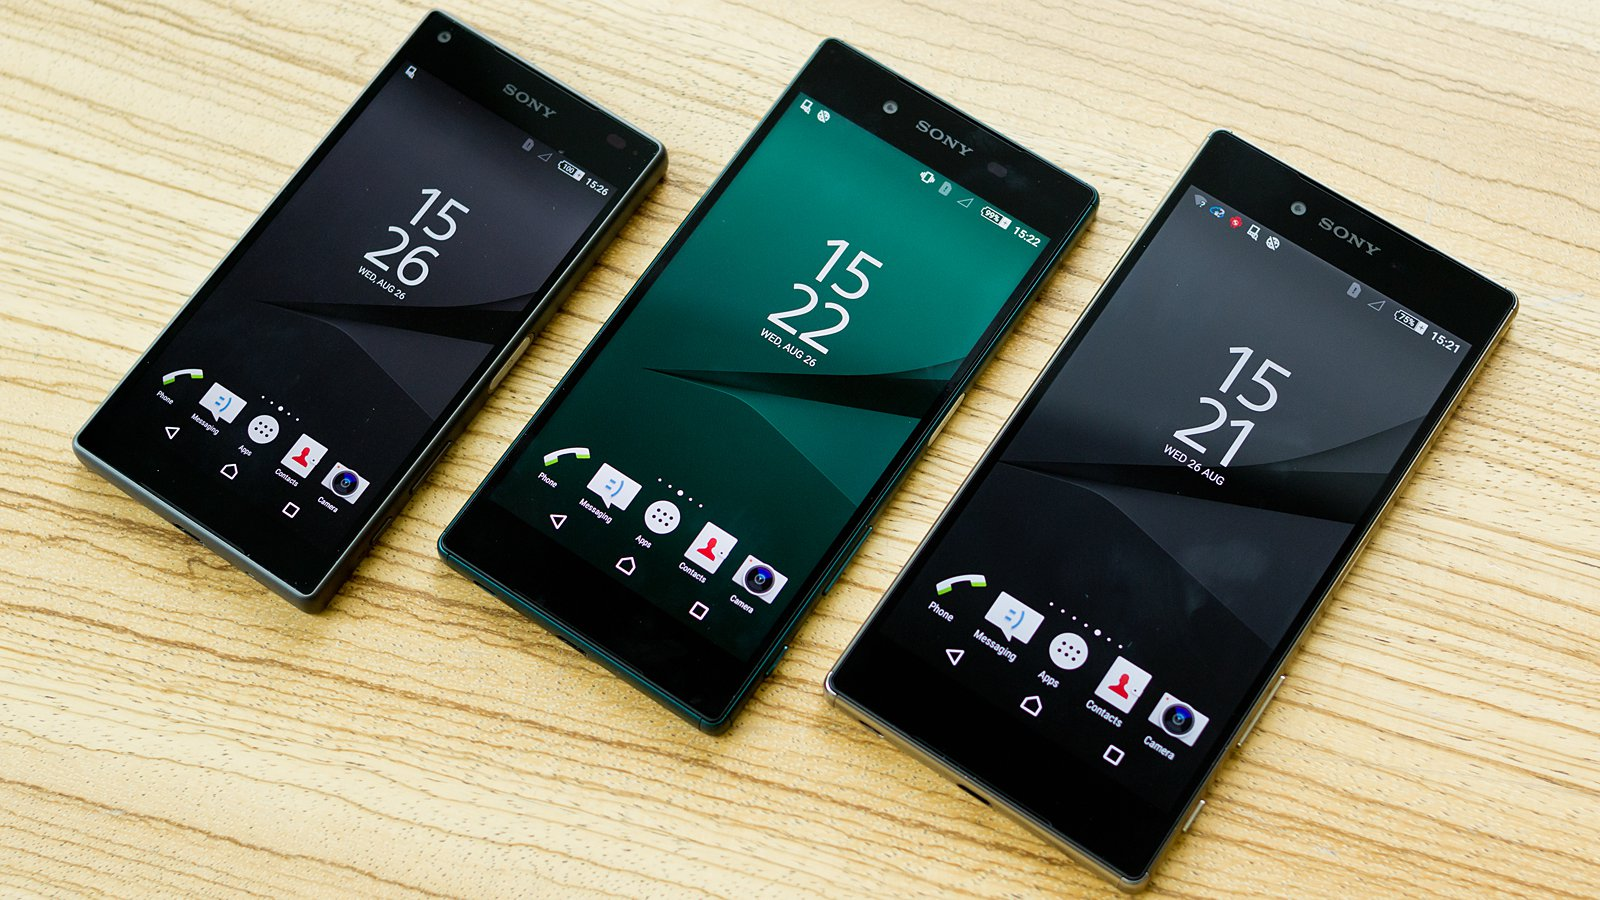 Sony's Xperia Z5 family includes the world's first 4K smartphone